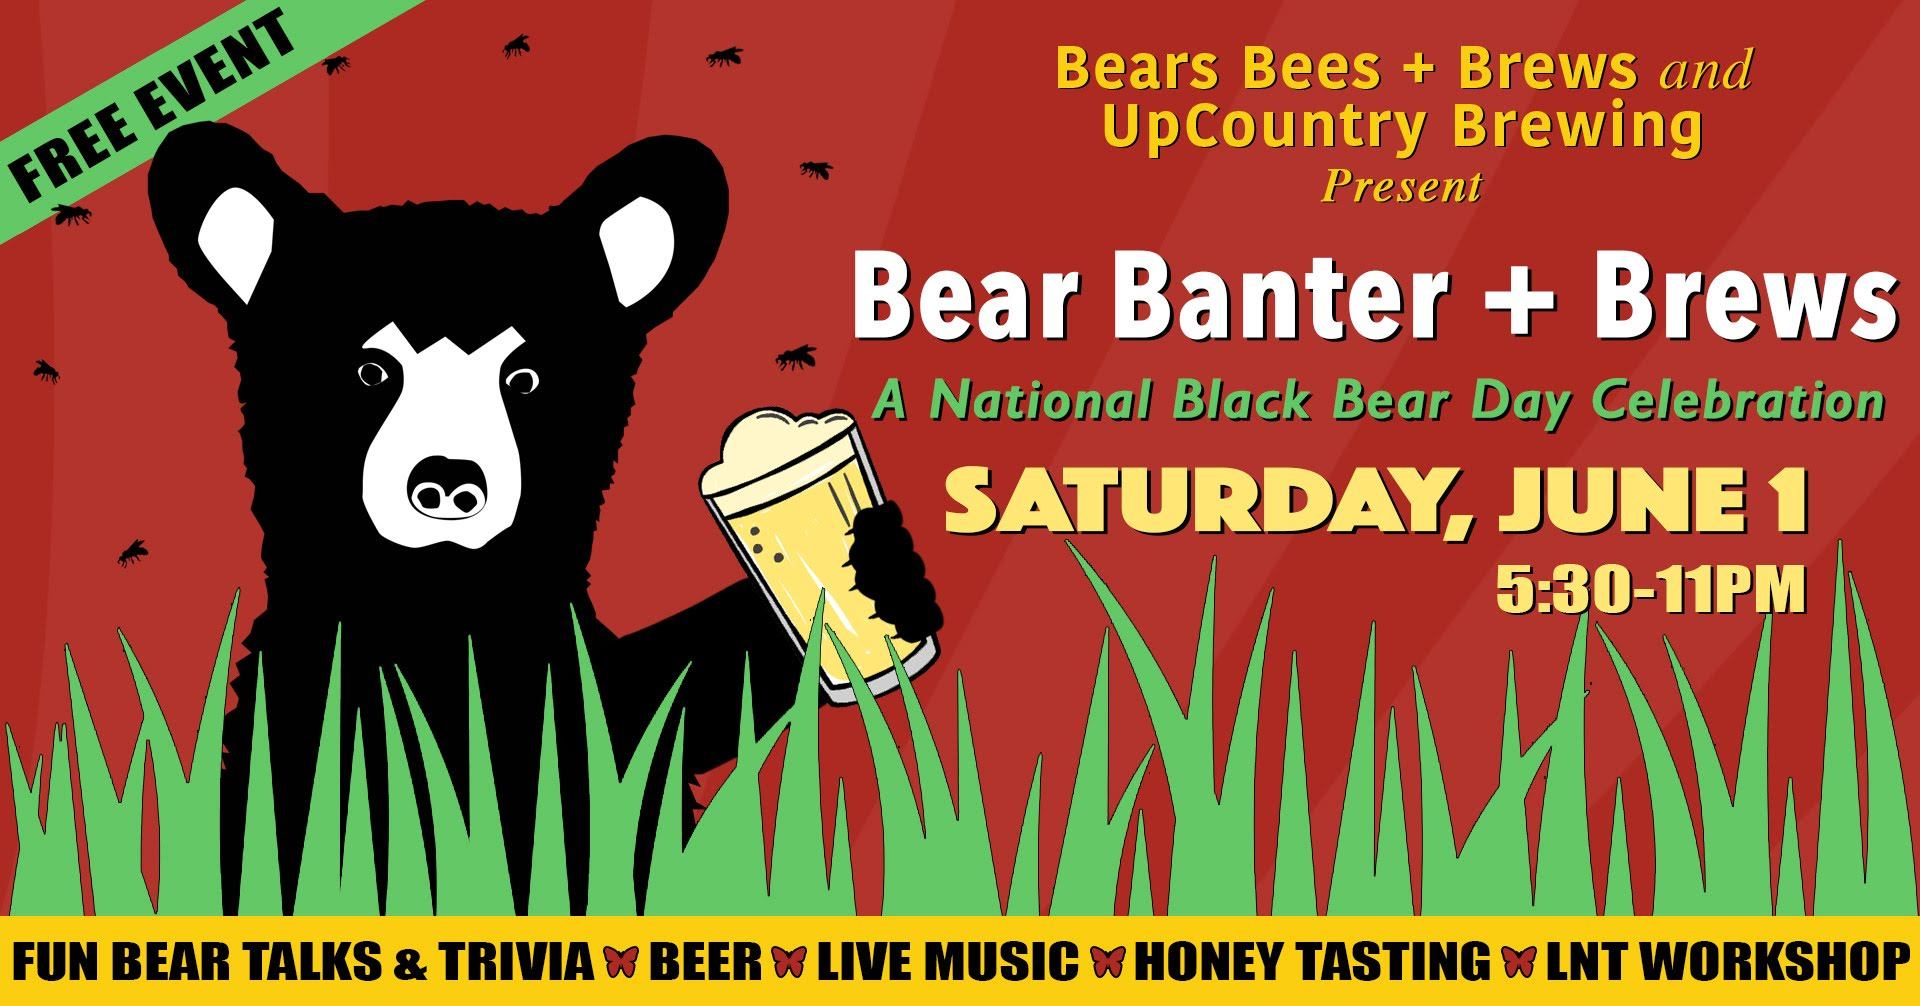 Bears Banter + Brews